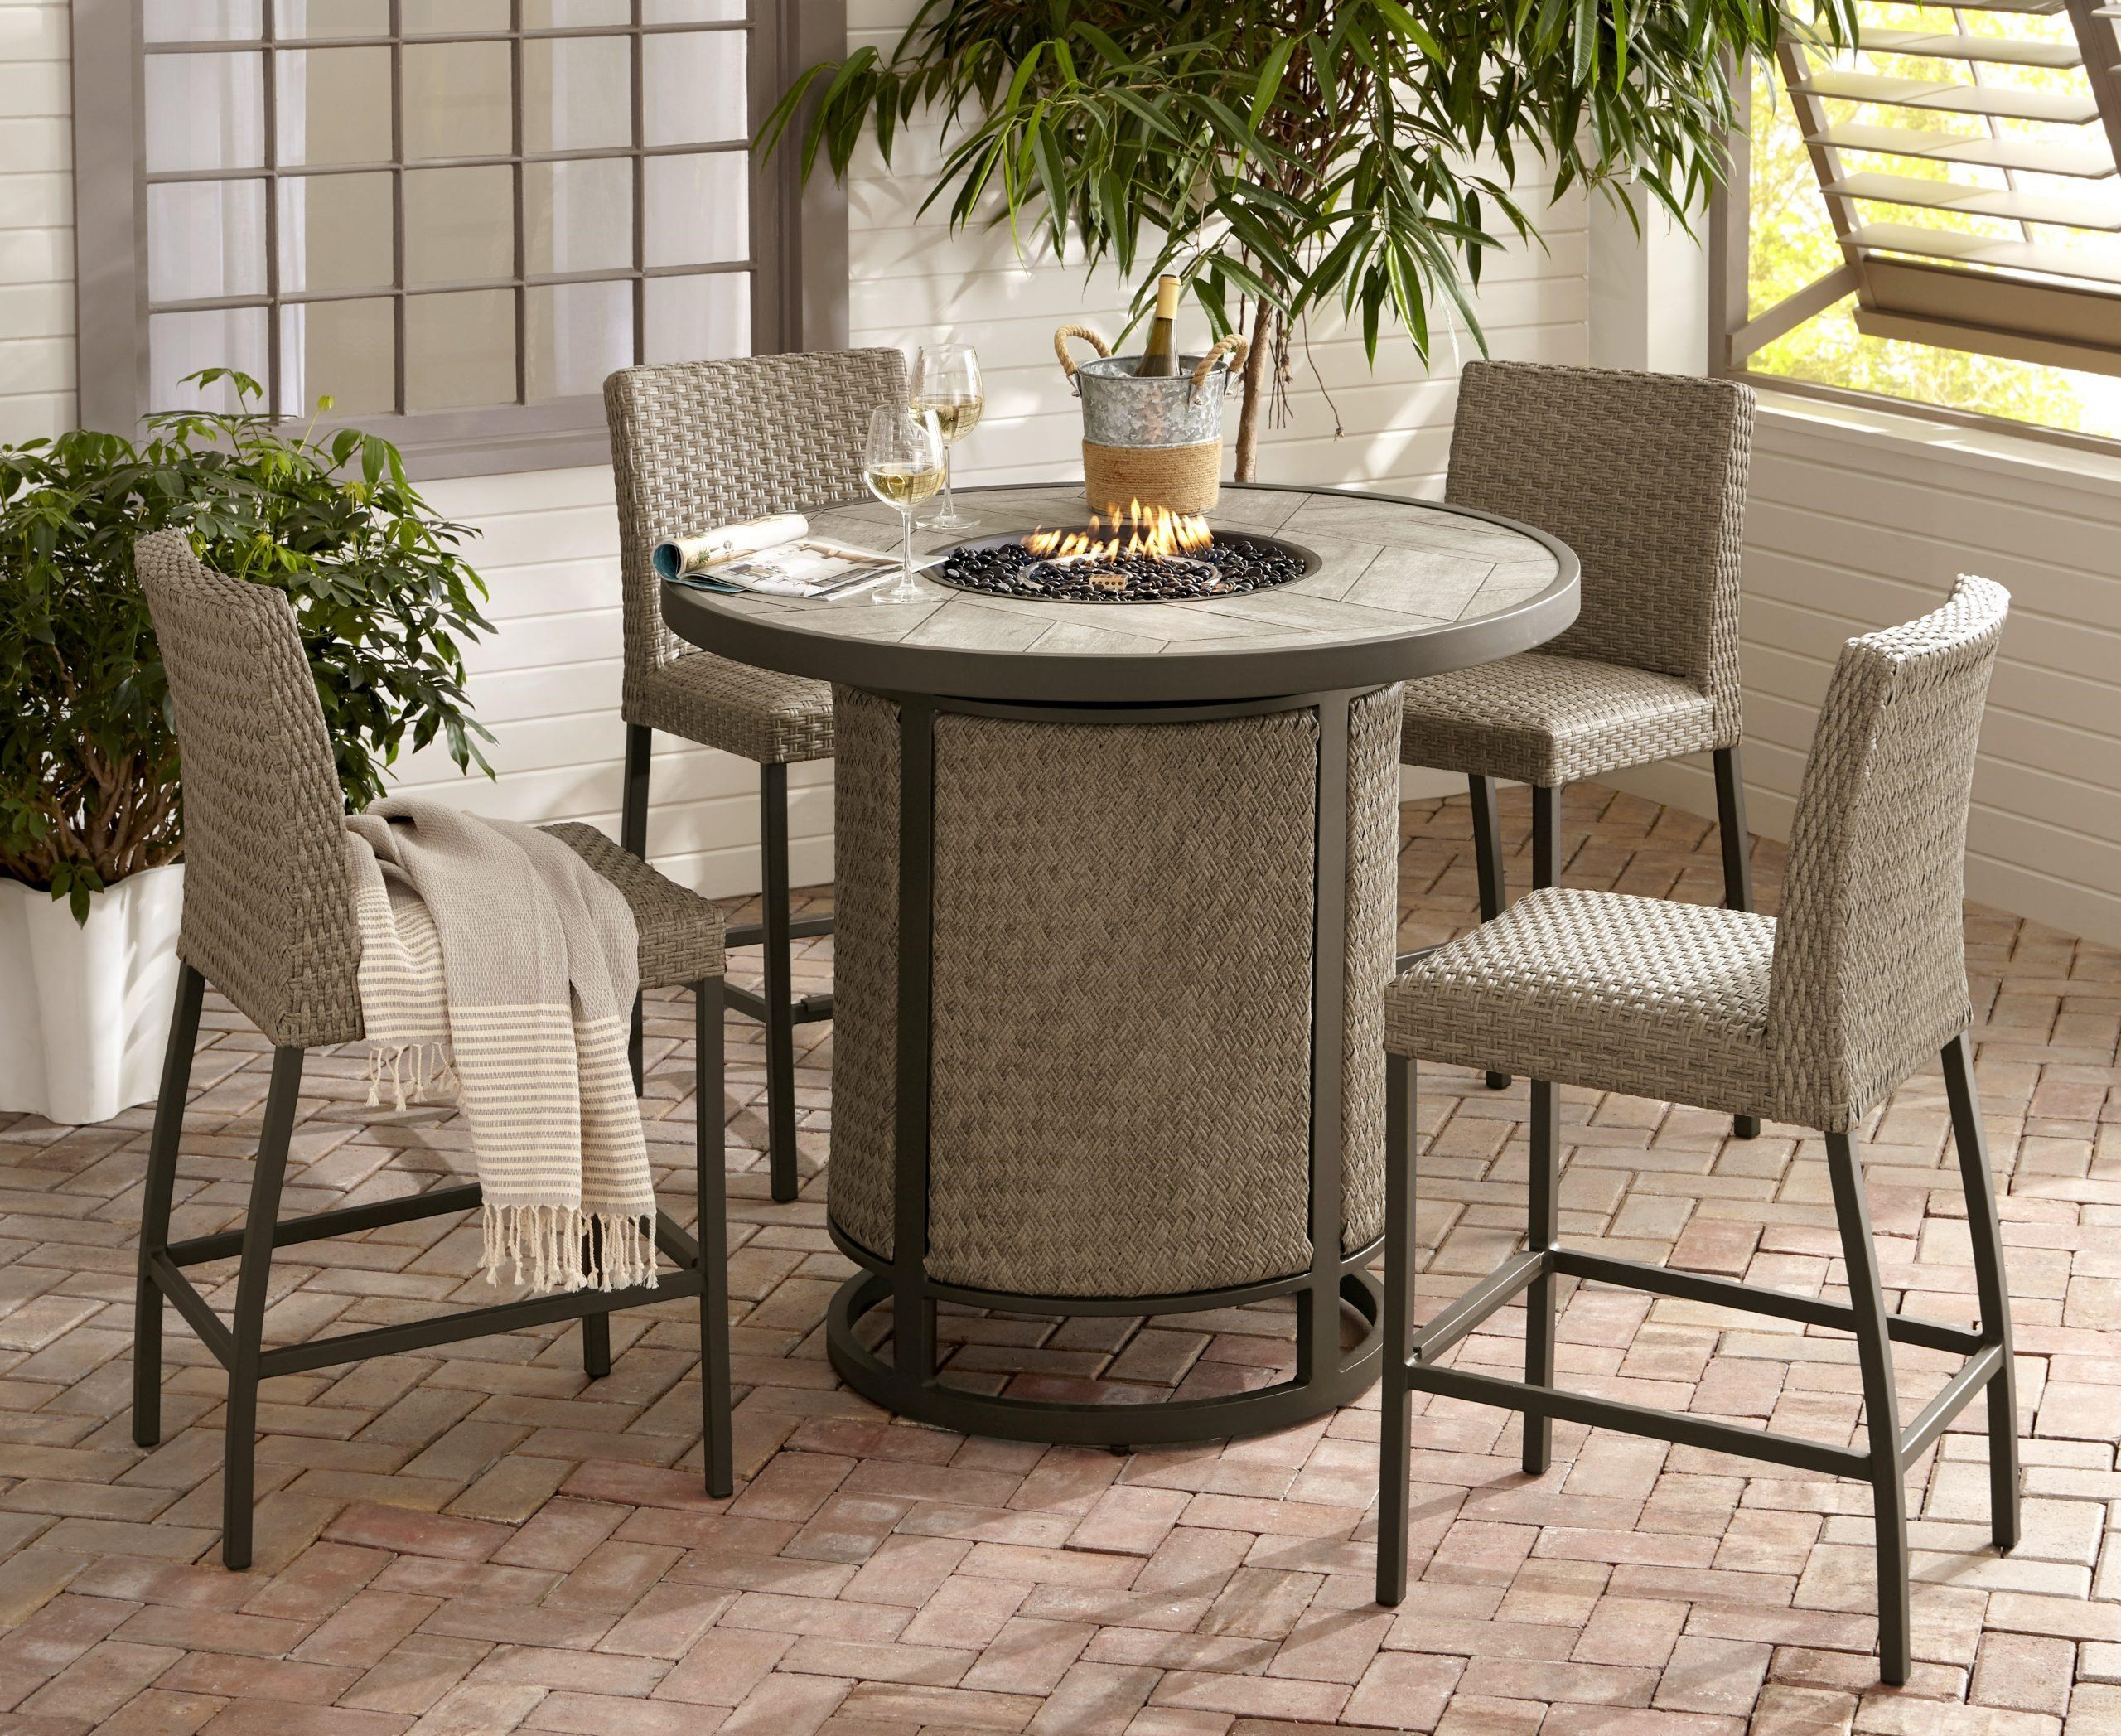 Ellery 44 Inch Firepit and 4 Counter Stools by Apricity Outdoor at Johnny Janosik